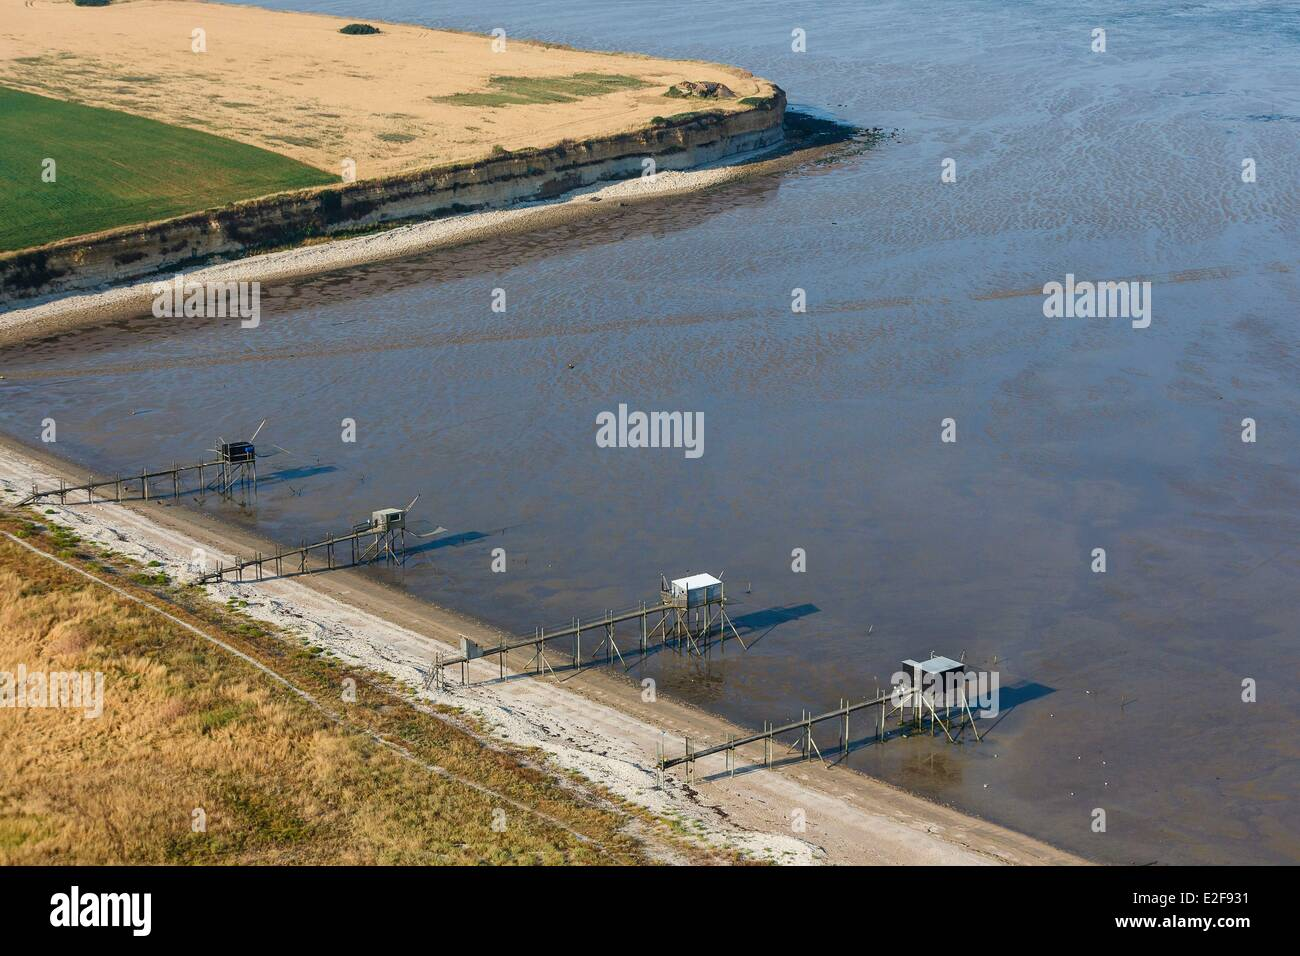 France, Charente Maritime, Yves, fisheries (aerial view) - Stock Image